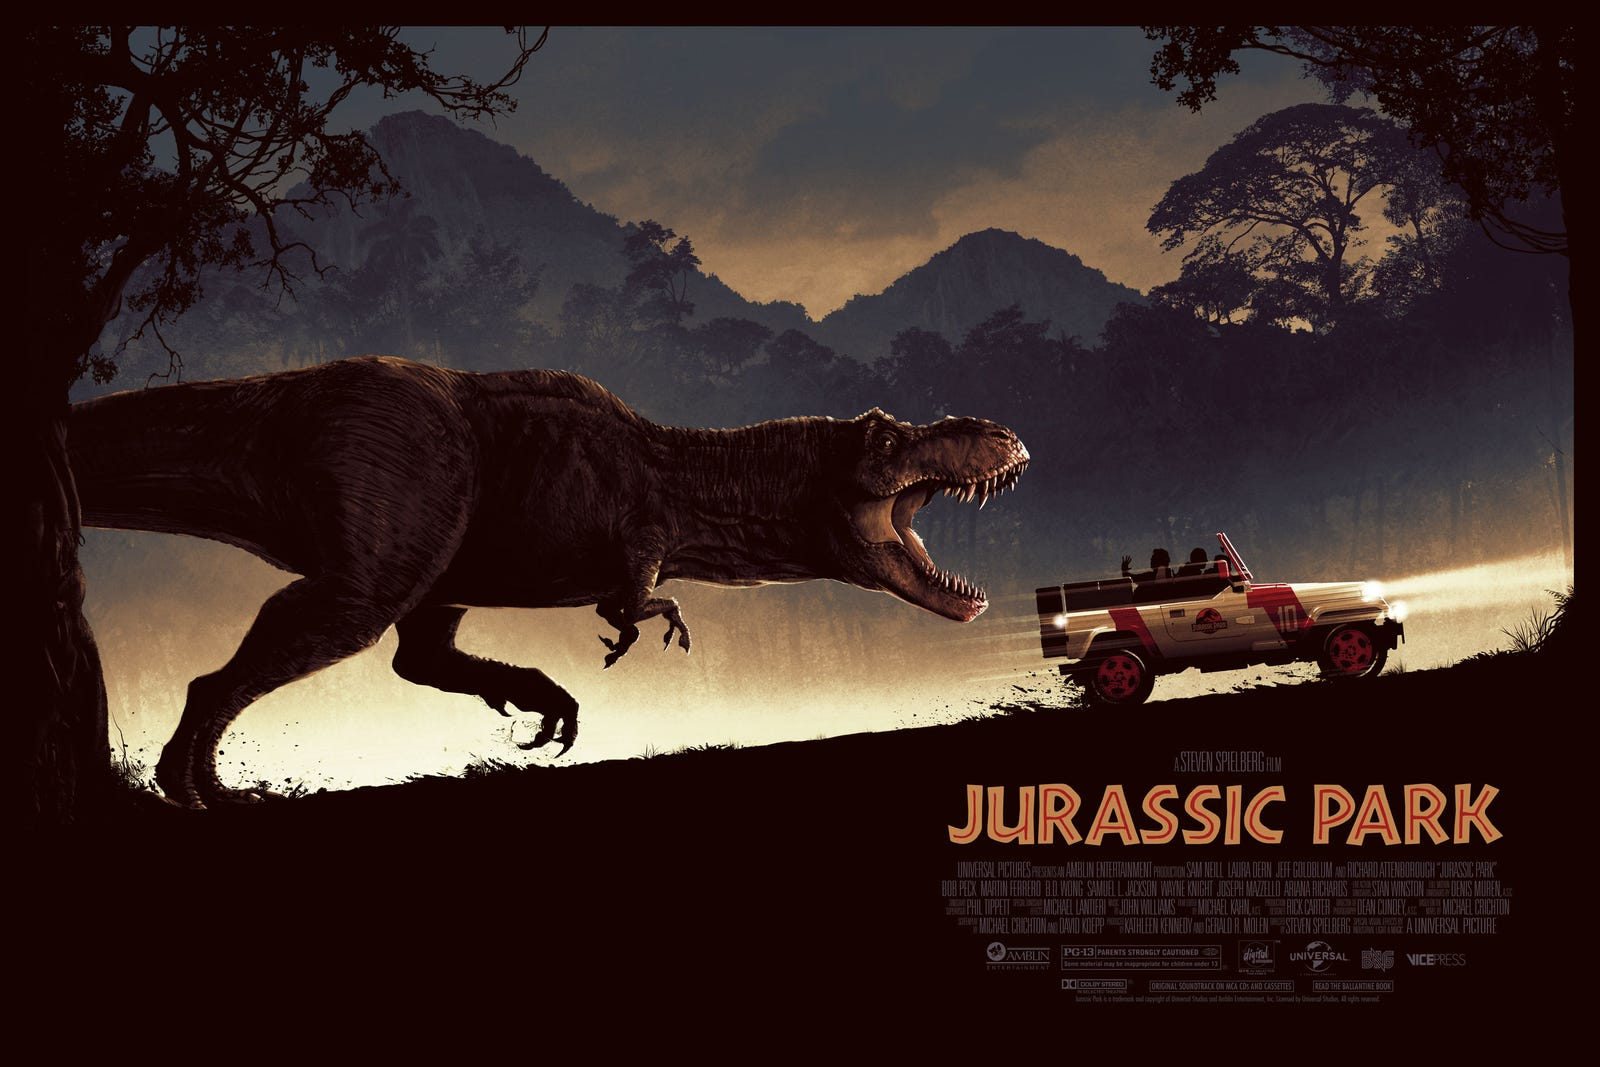 Matt Ferguson's Jurassic Park. A variant is also available.